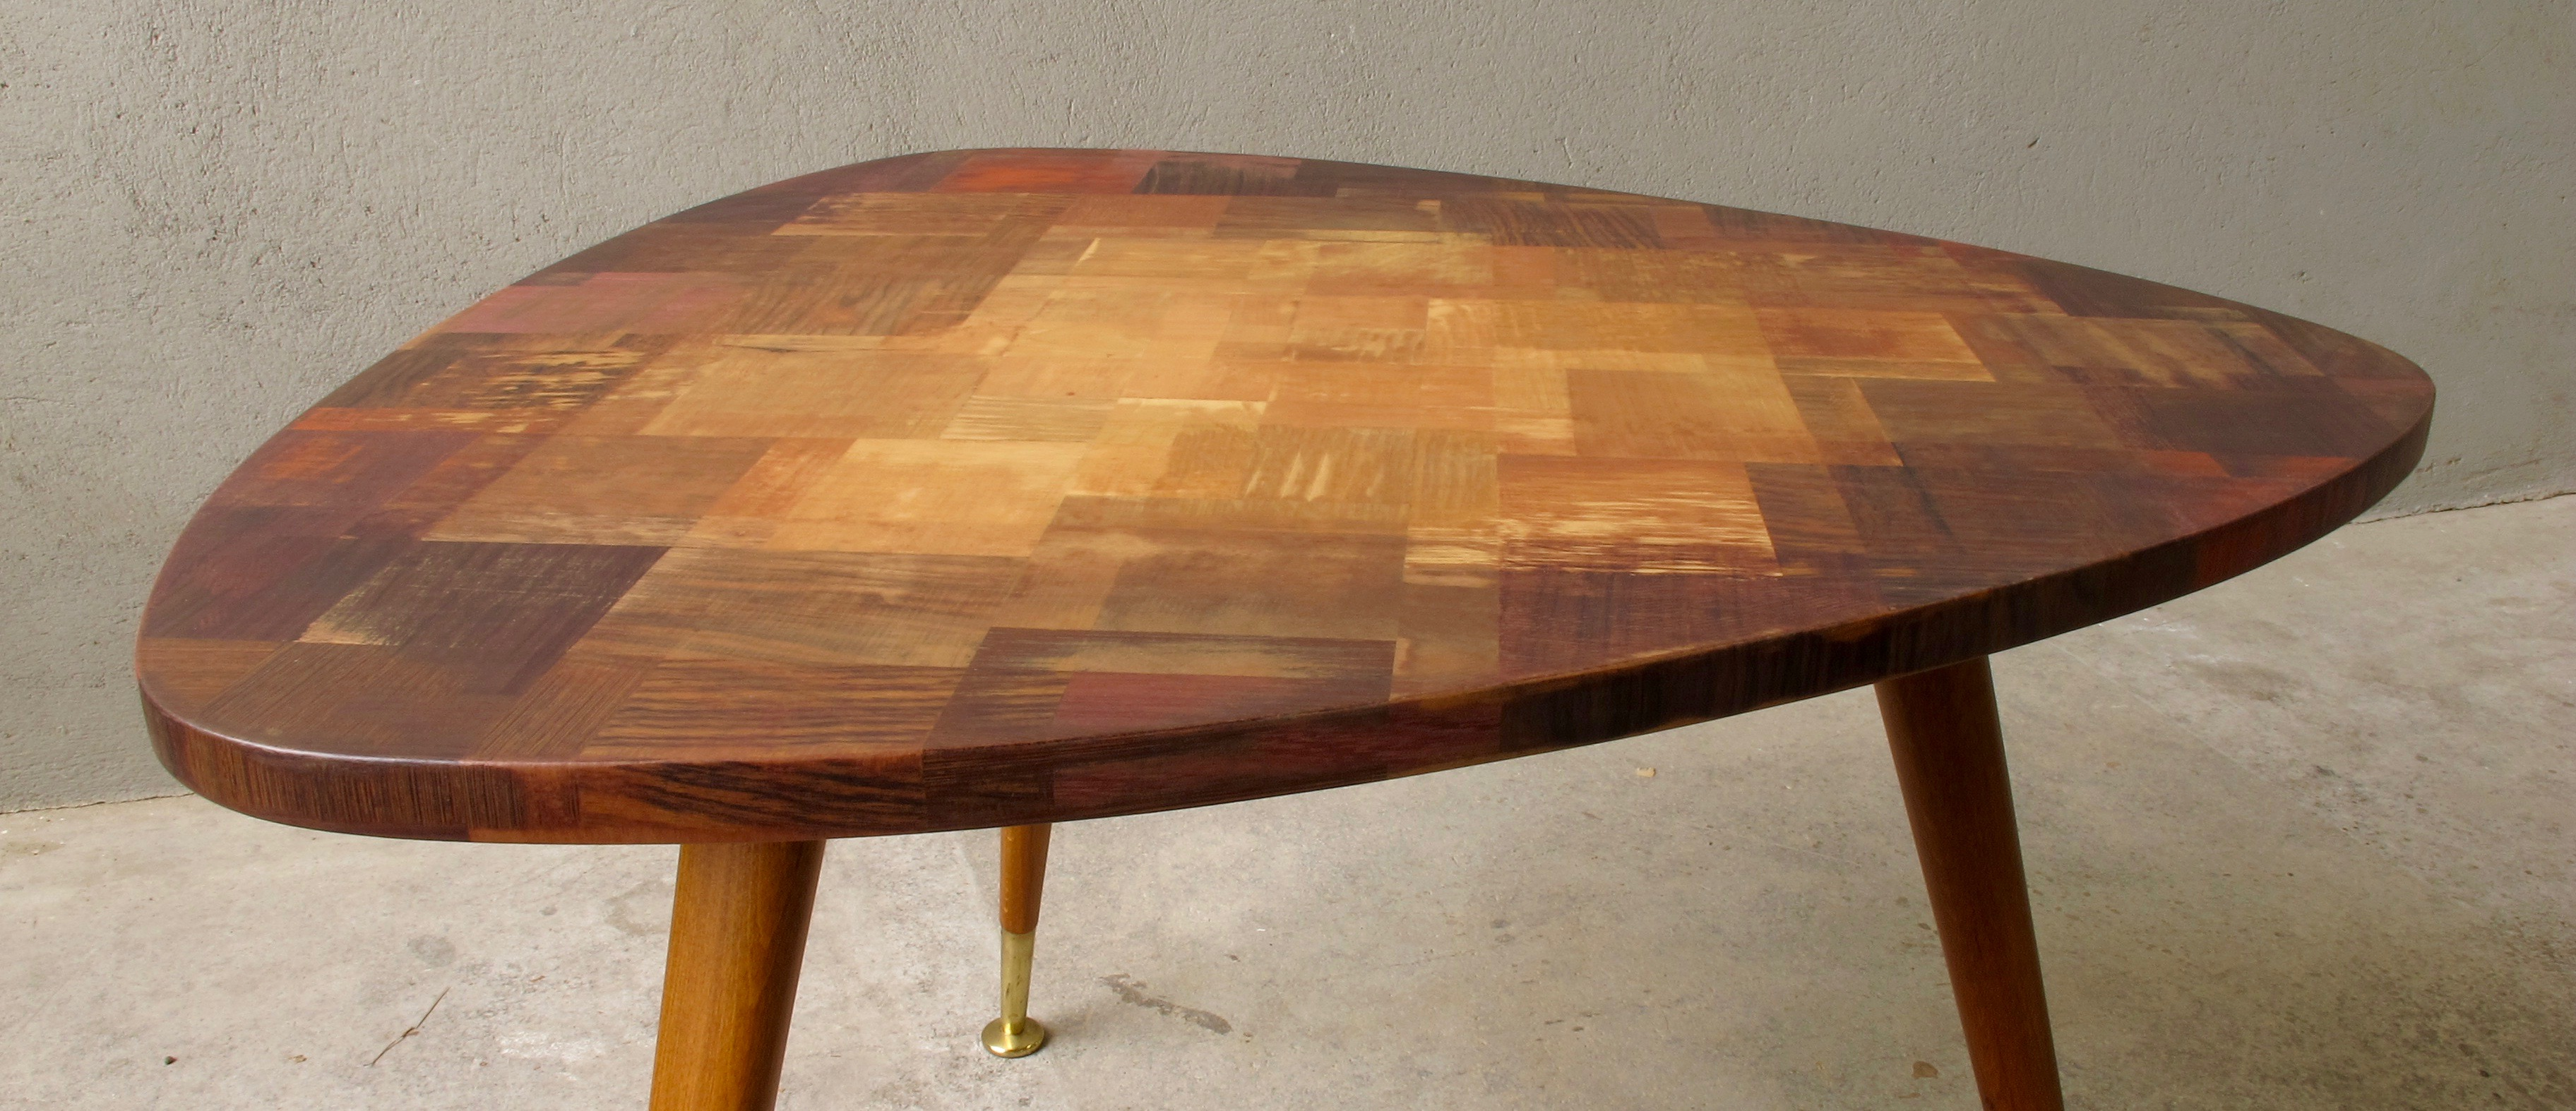 Table Tripode 018